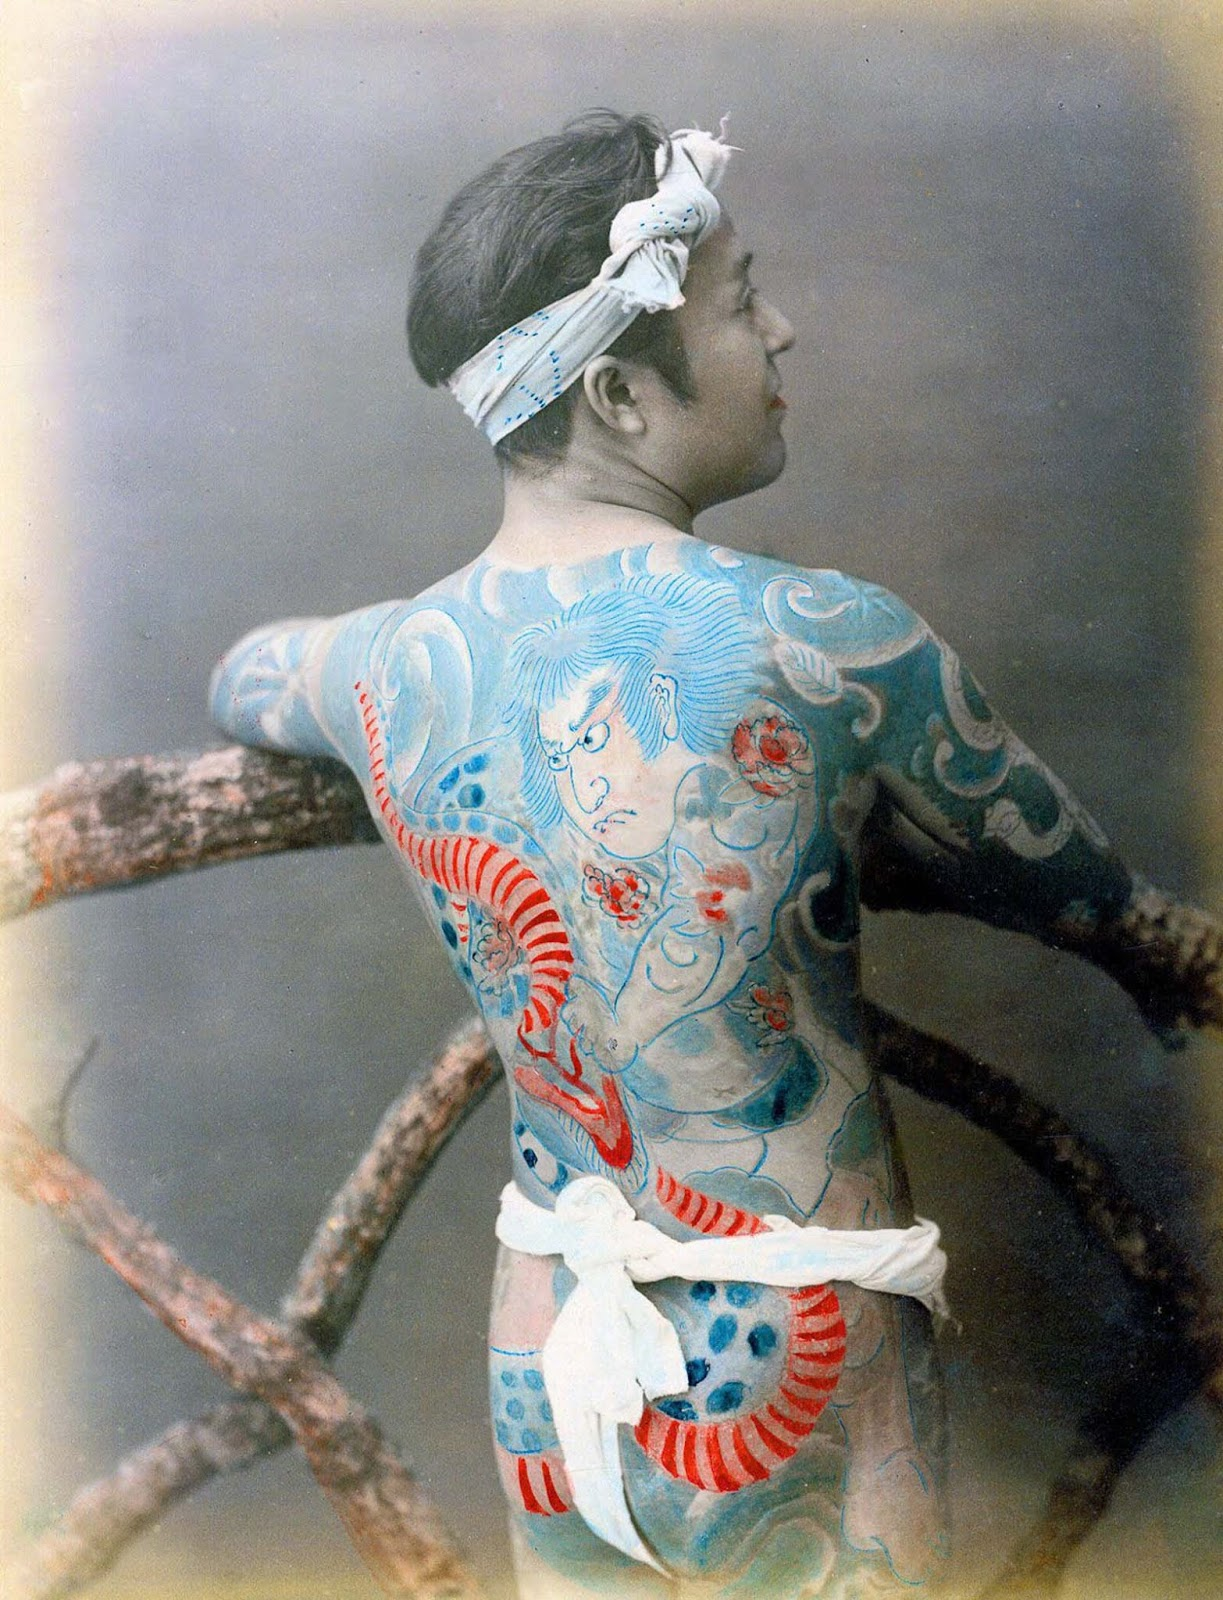 It is known for certain that irezumi became associated with firemen, dashing figures of bravery and roguish sex-appeal, who wore them as a form of spiritual protection.